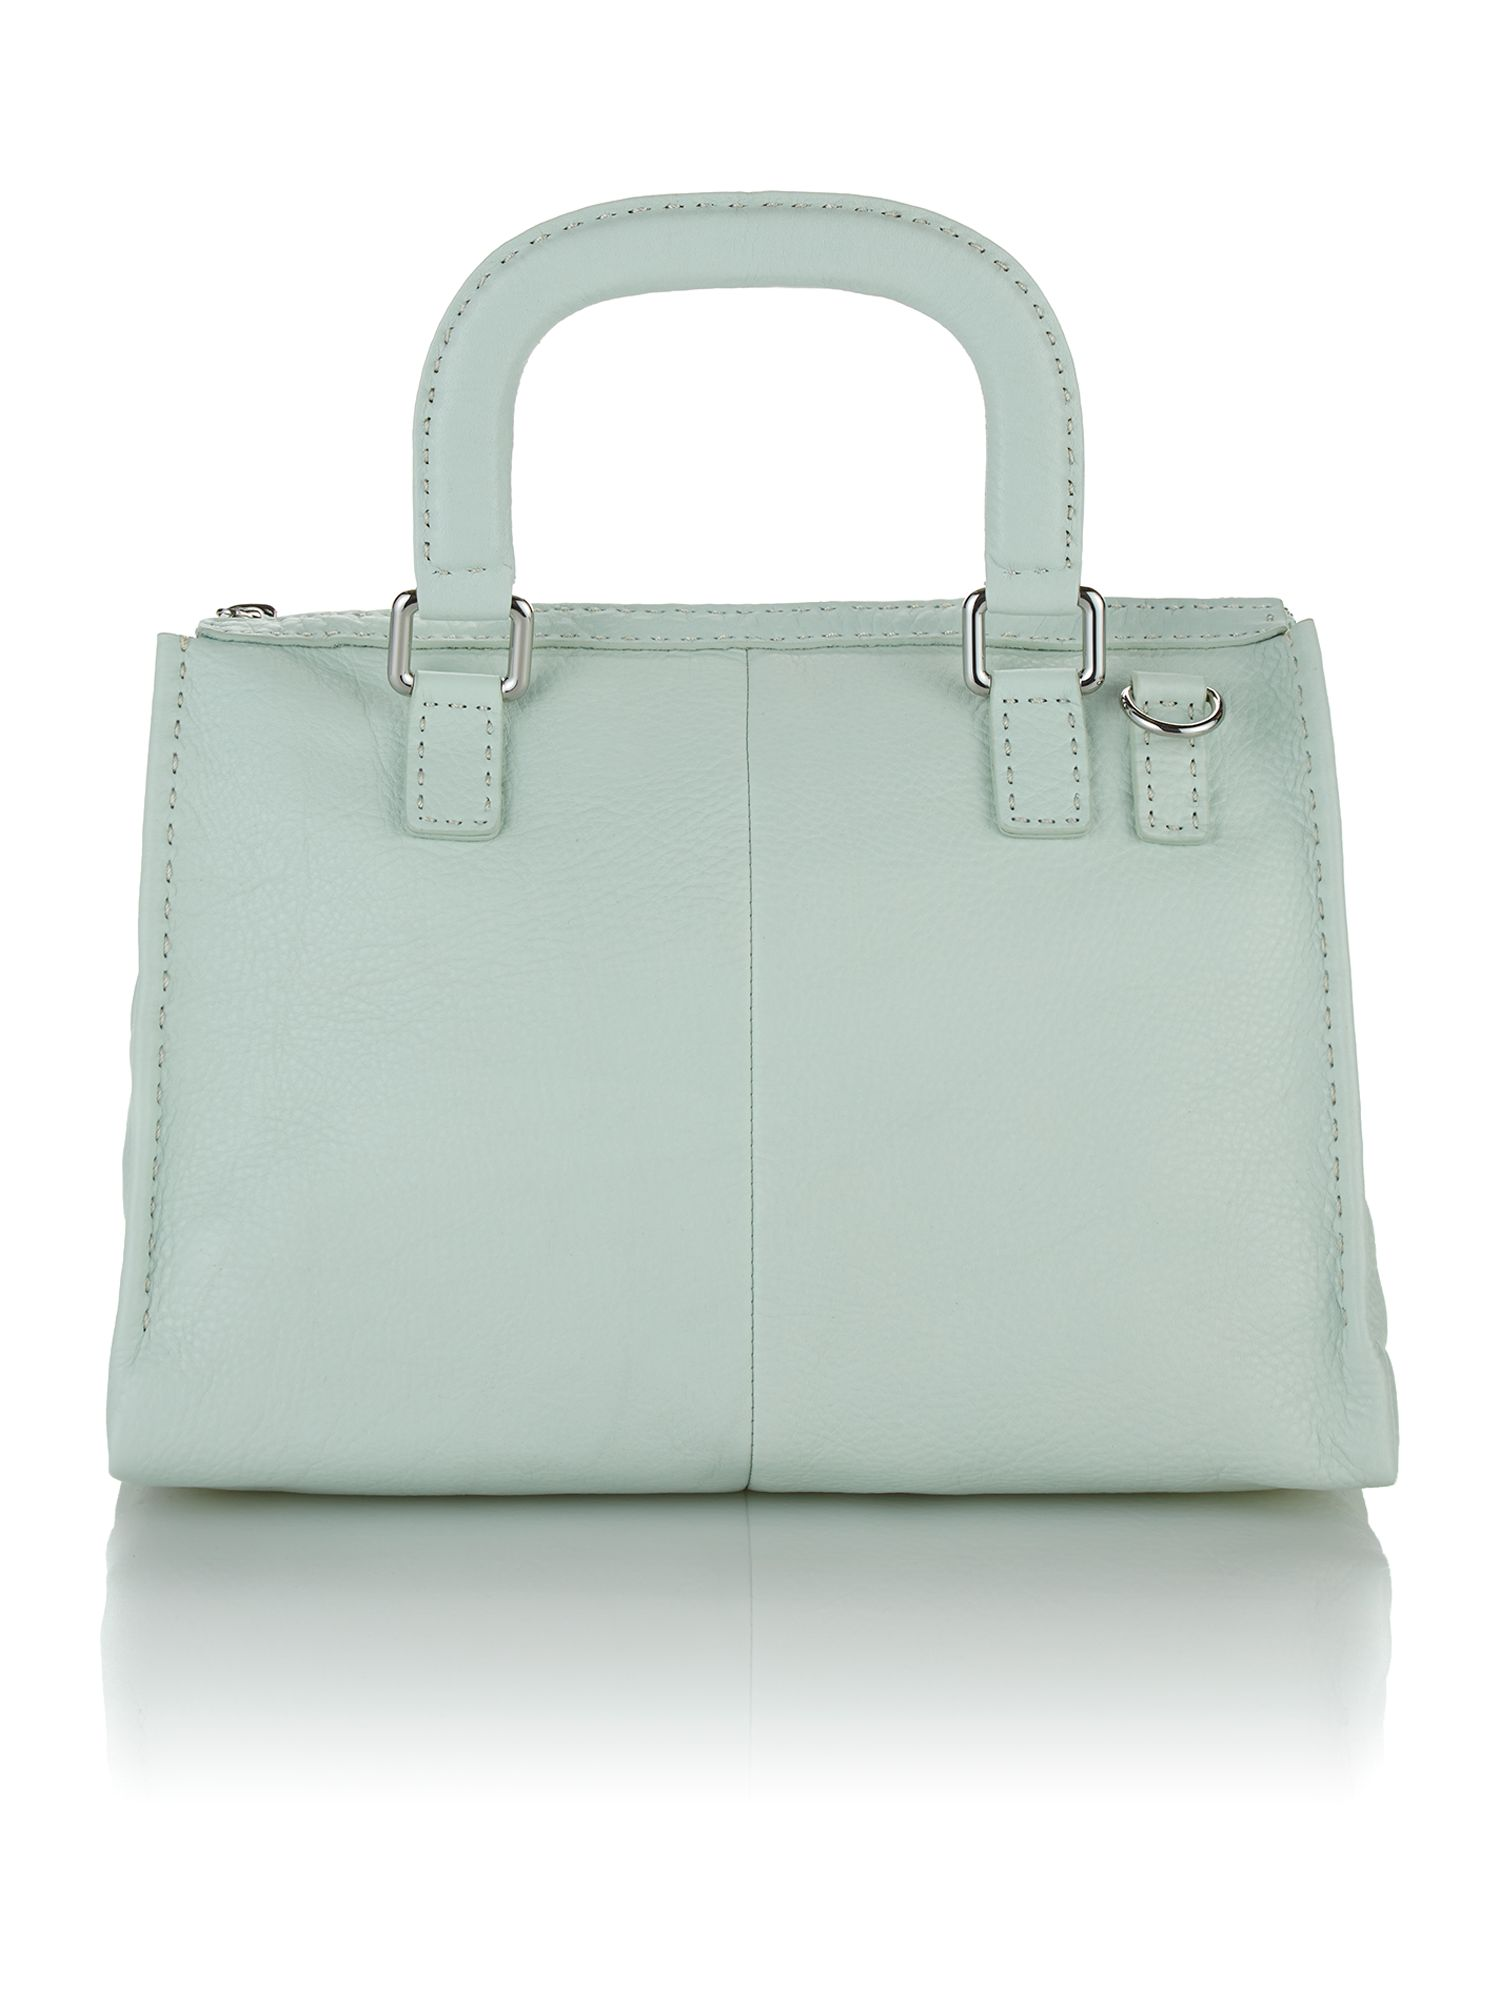 Large green cross body satchel